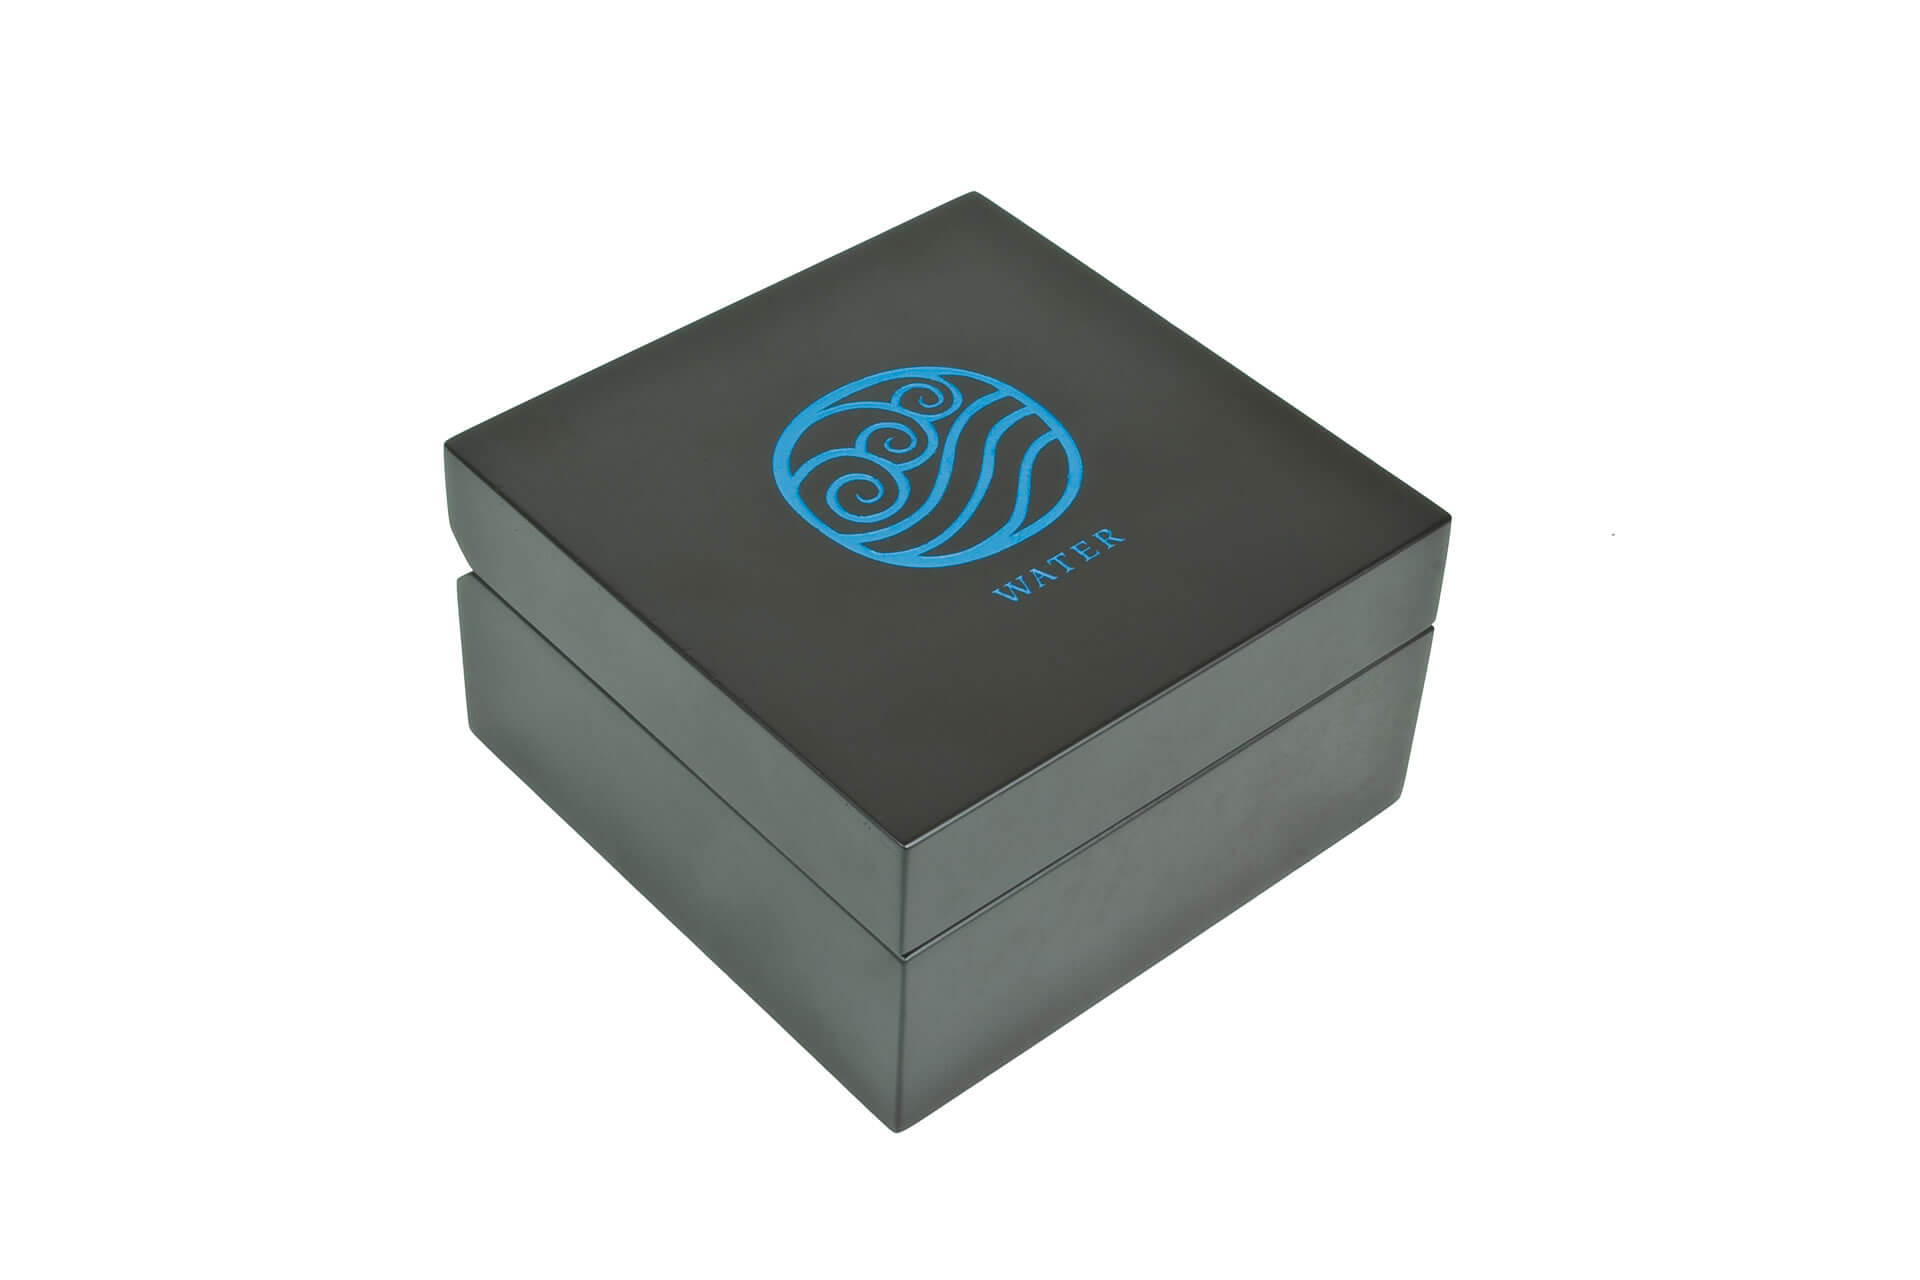 bespoke wooden car wax packaging laser engraved blue infill closed